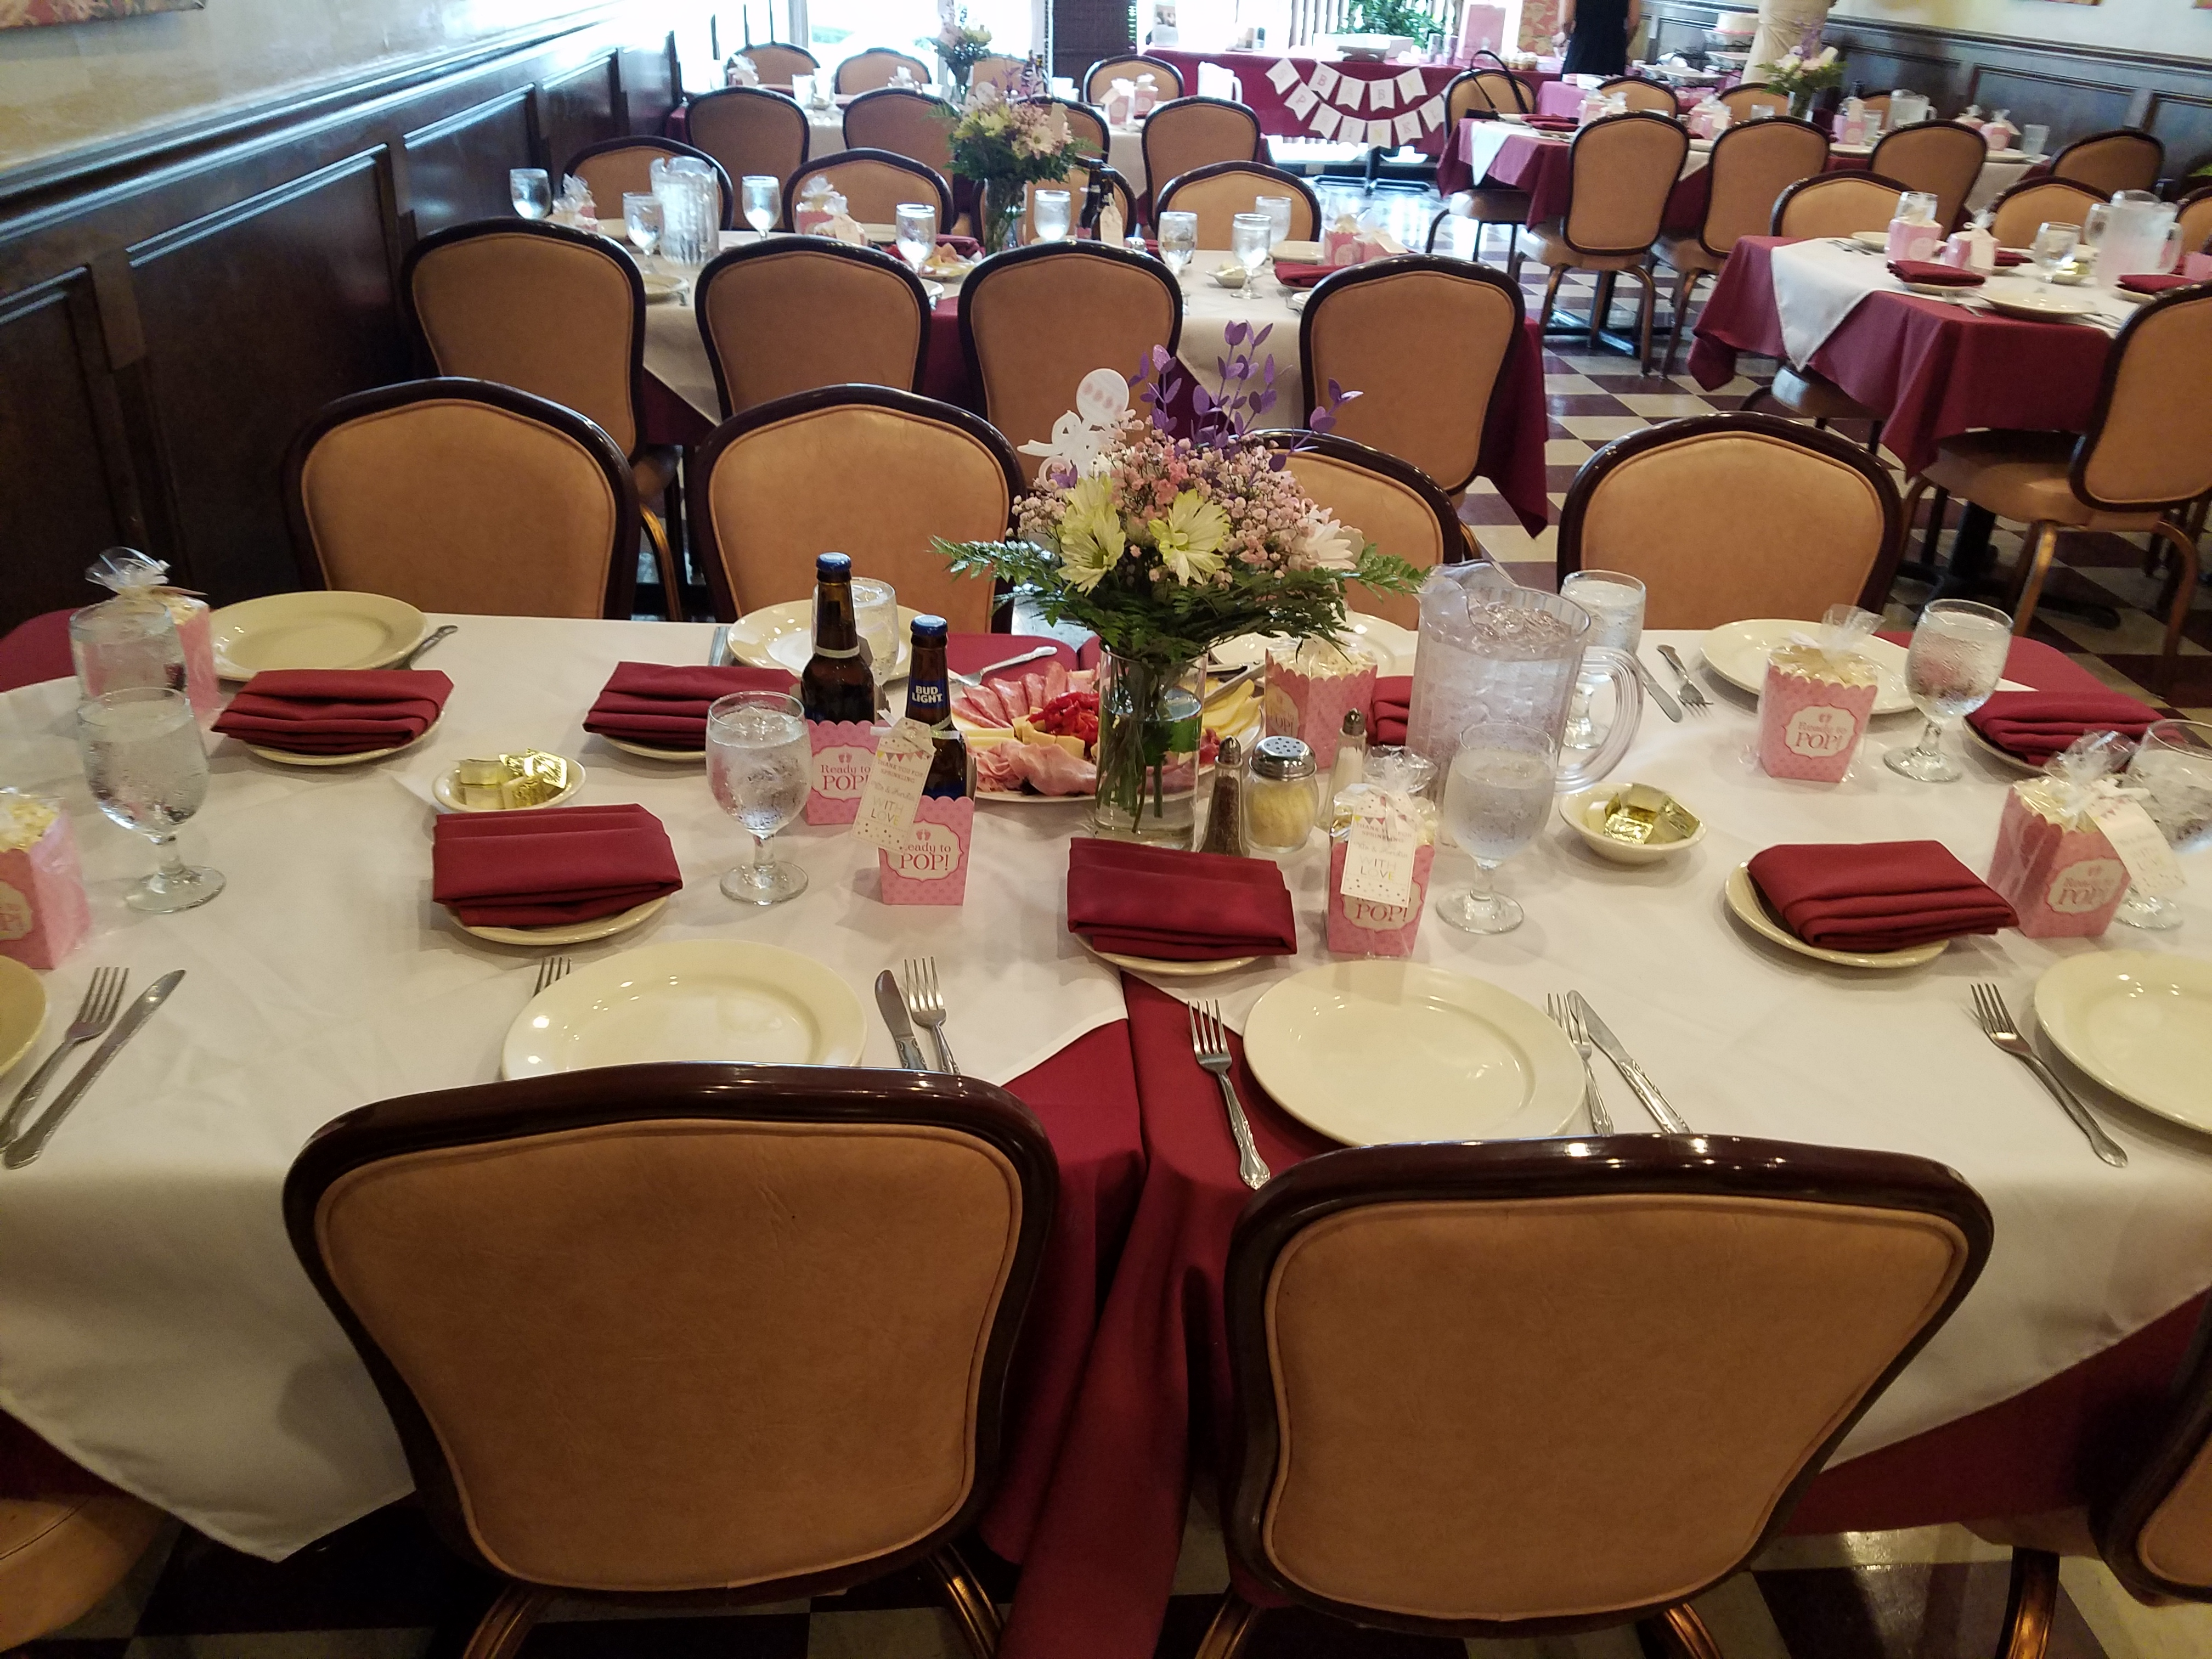 The Harvest room event space at Marcello's Trattoria in New Jersey